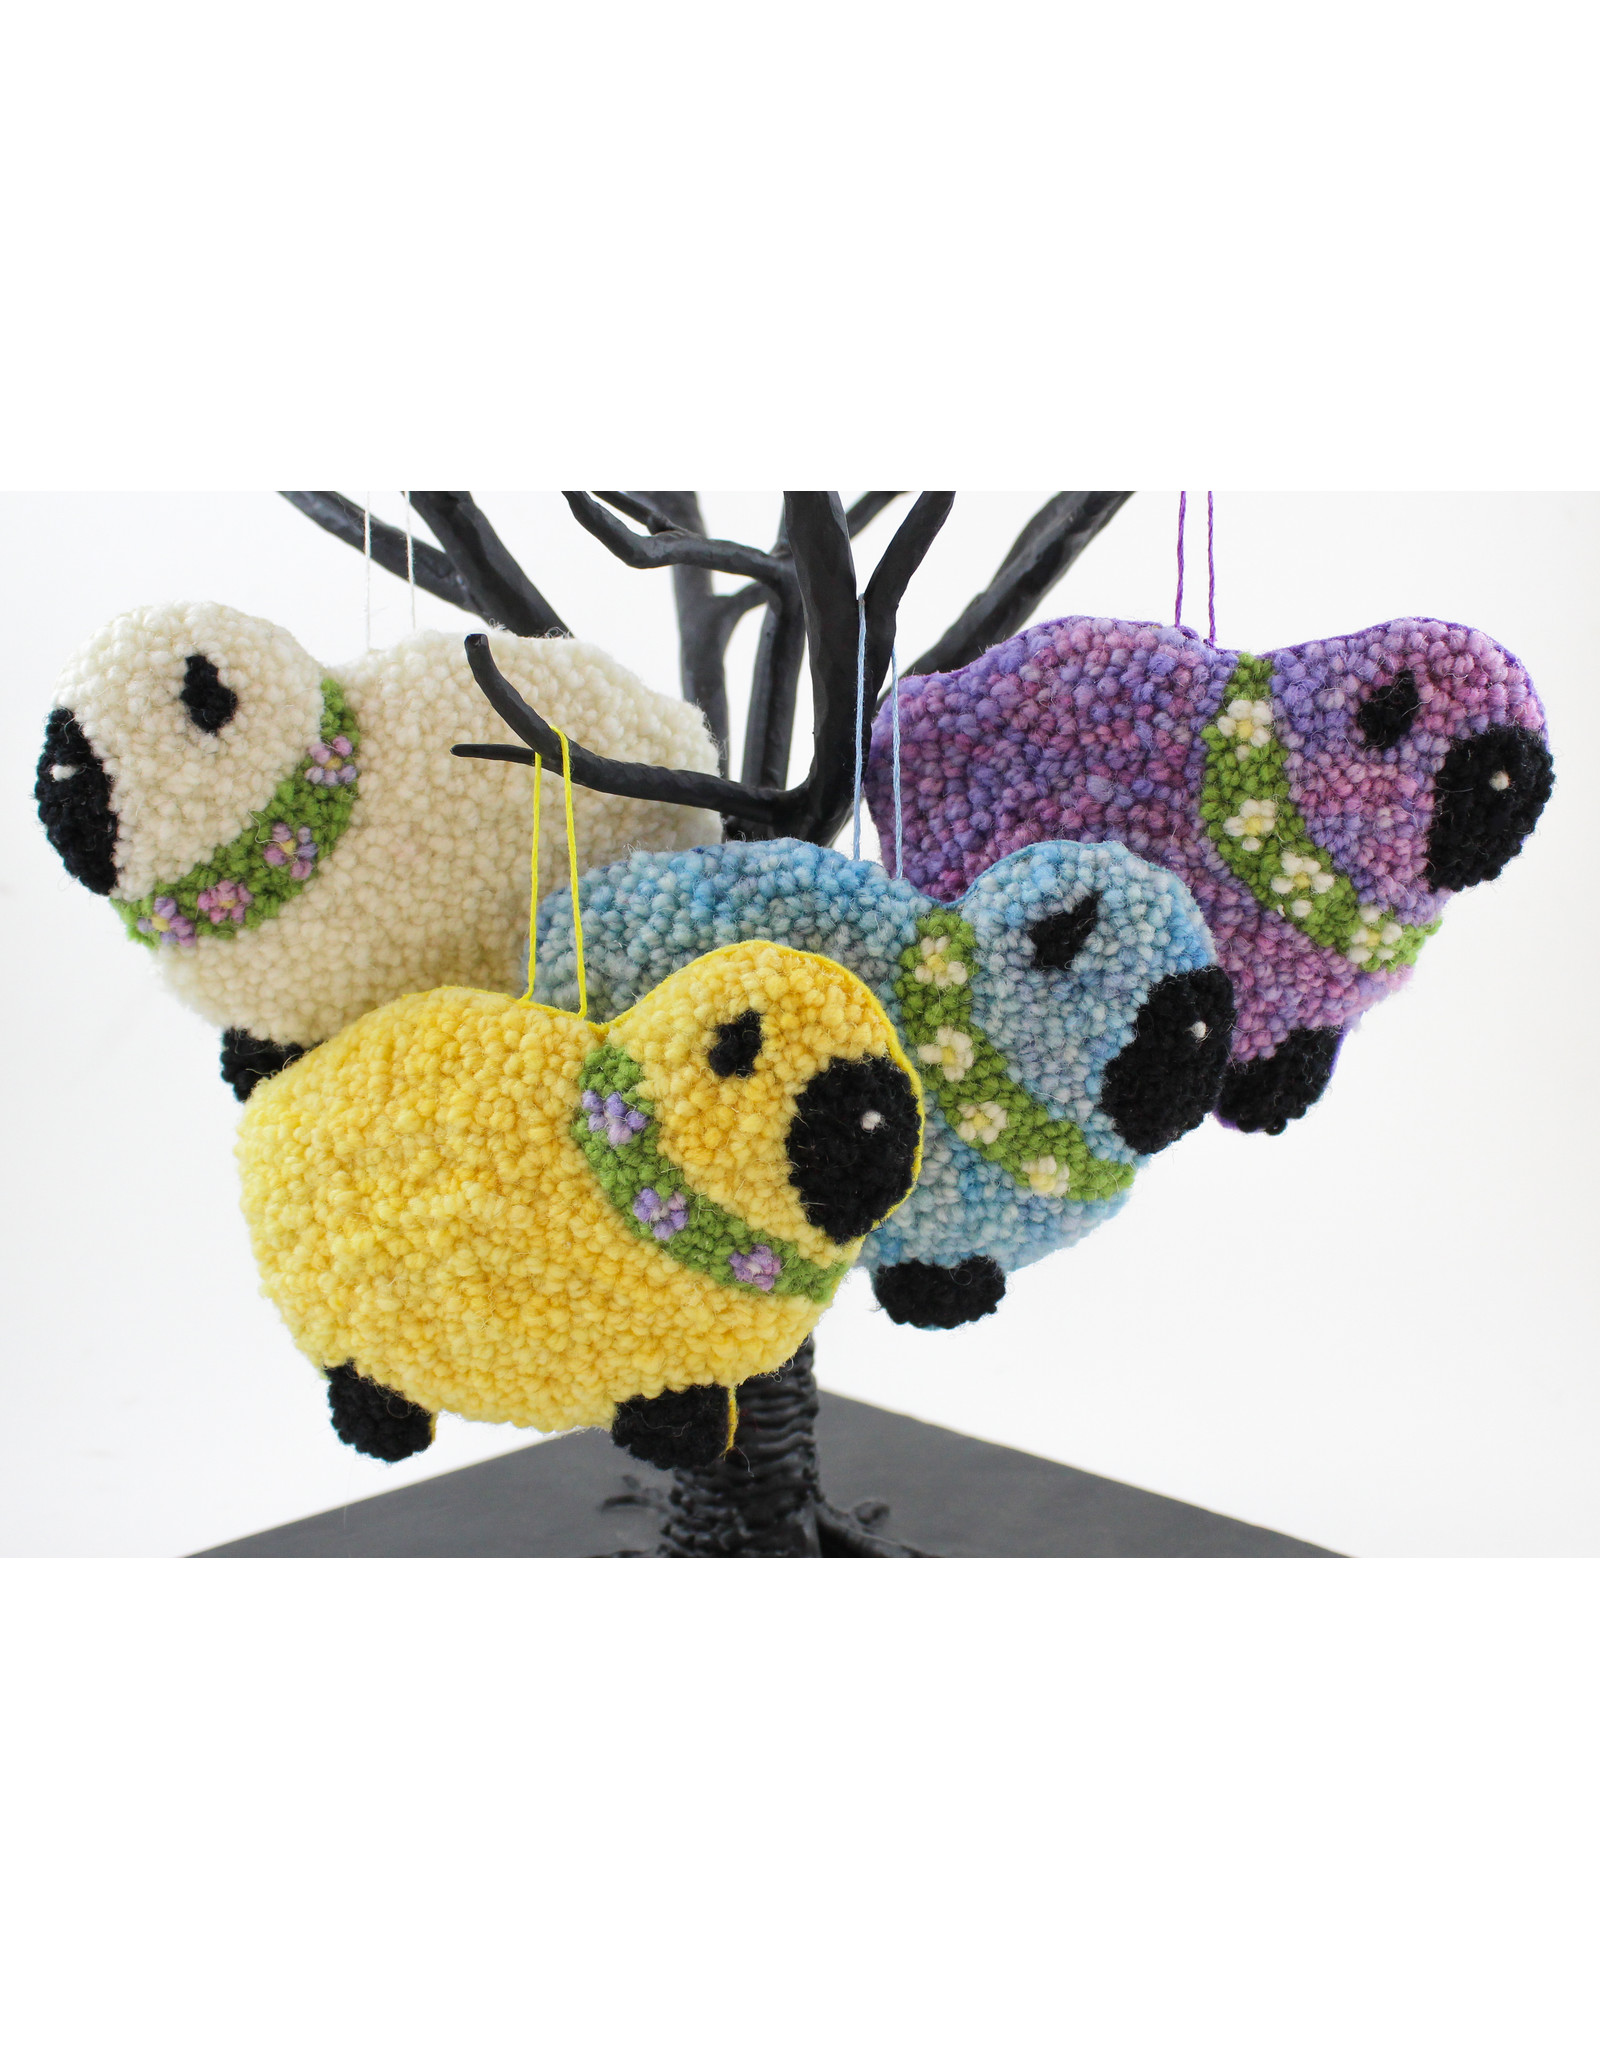 Betty Paruch Sheep Ornaments by Betty Paruch